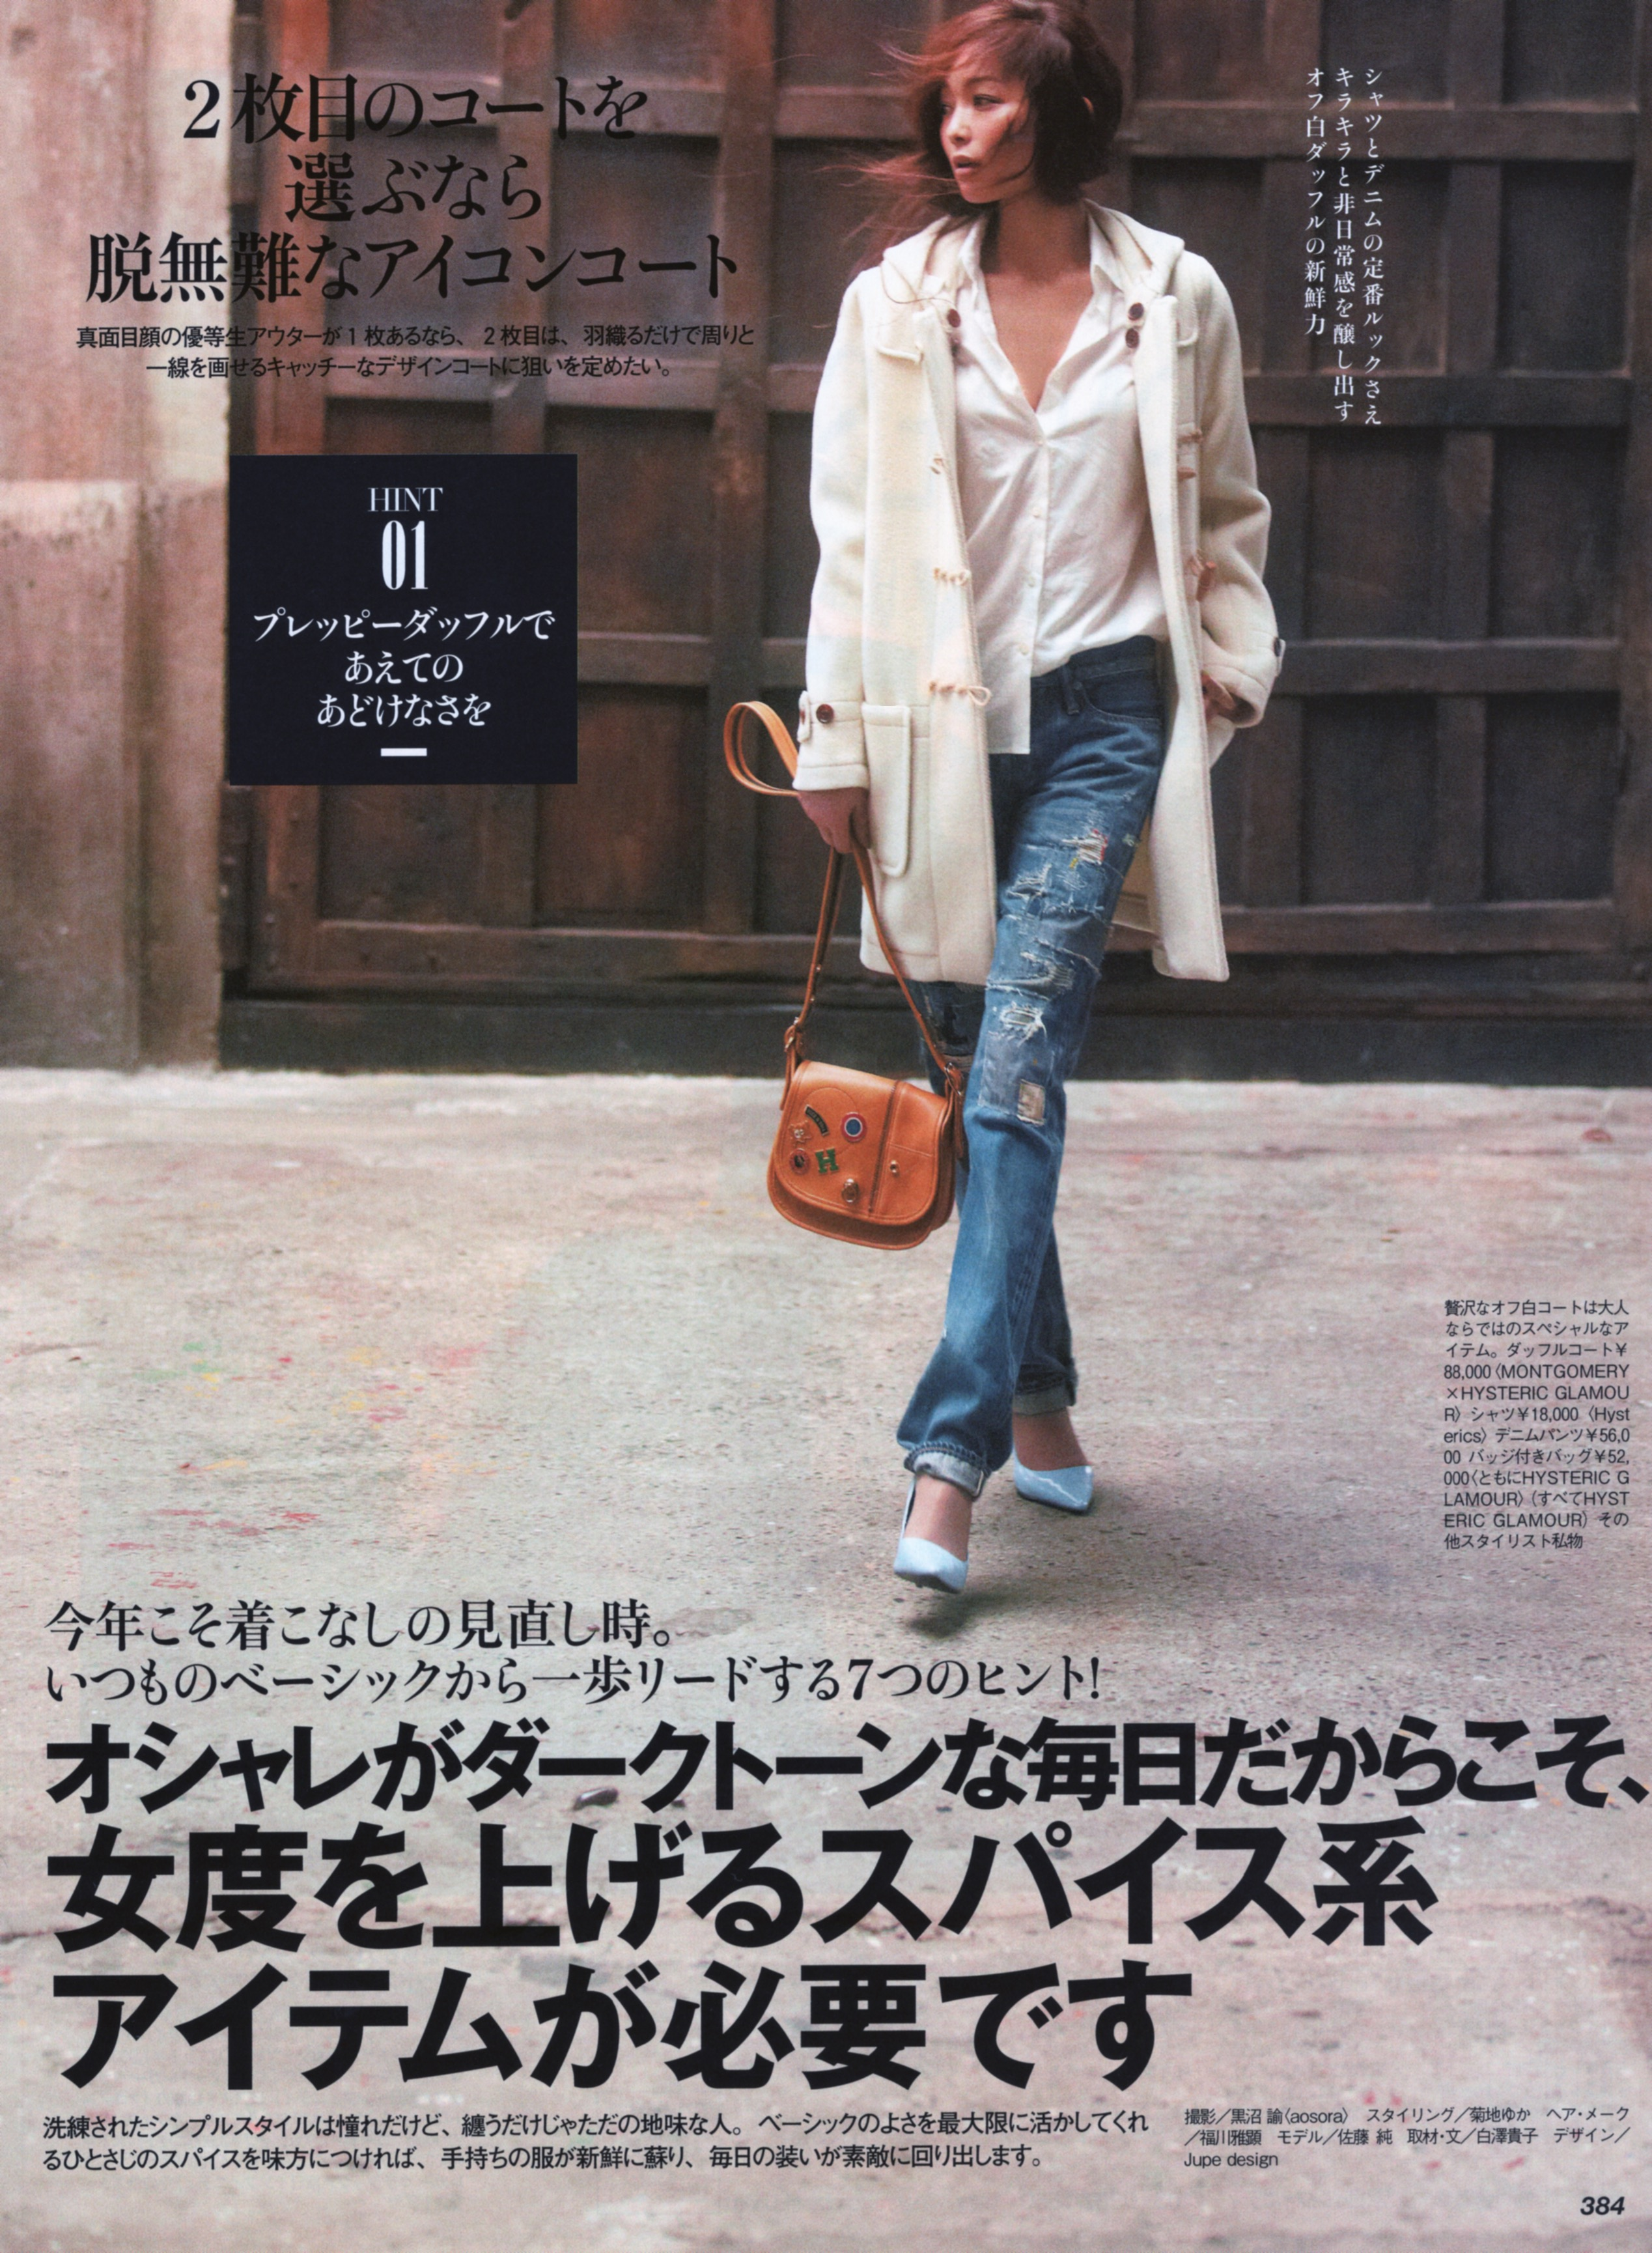 VERY 2014 hysteric glamour